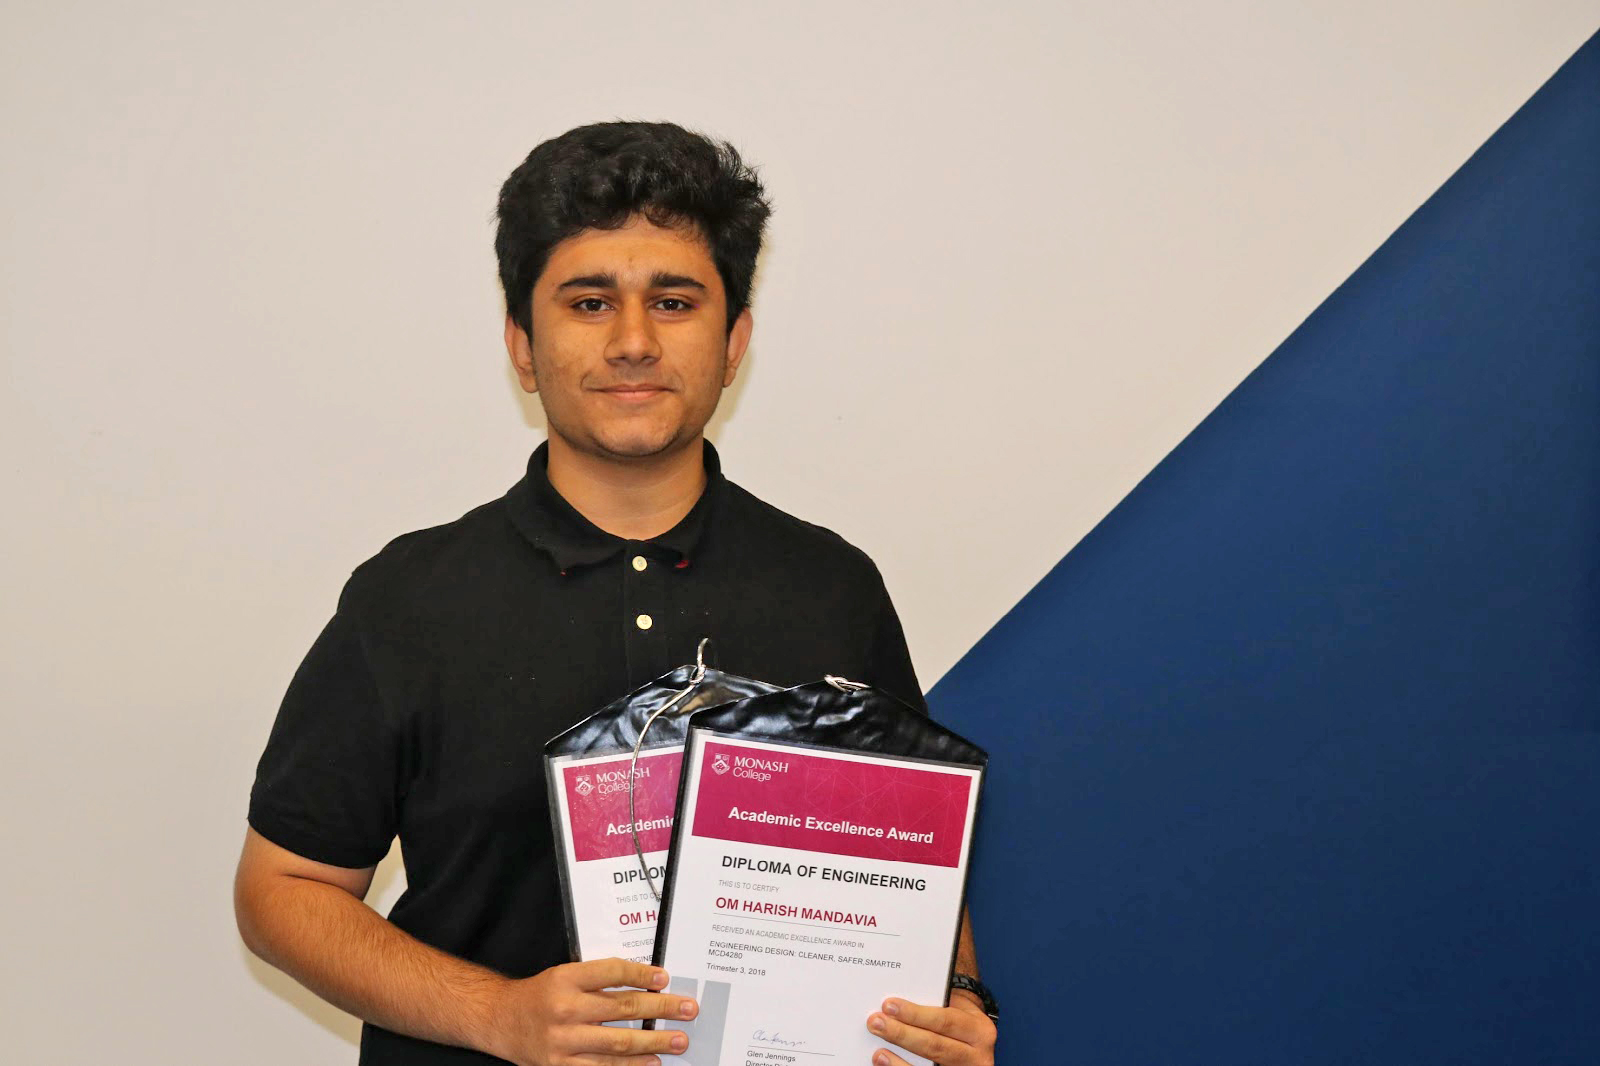 Om Harish Mandavia diploma student winner of two academic excellence awards